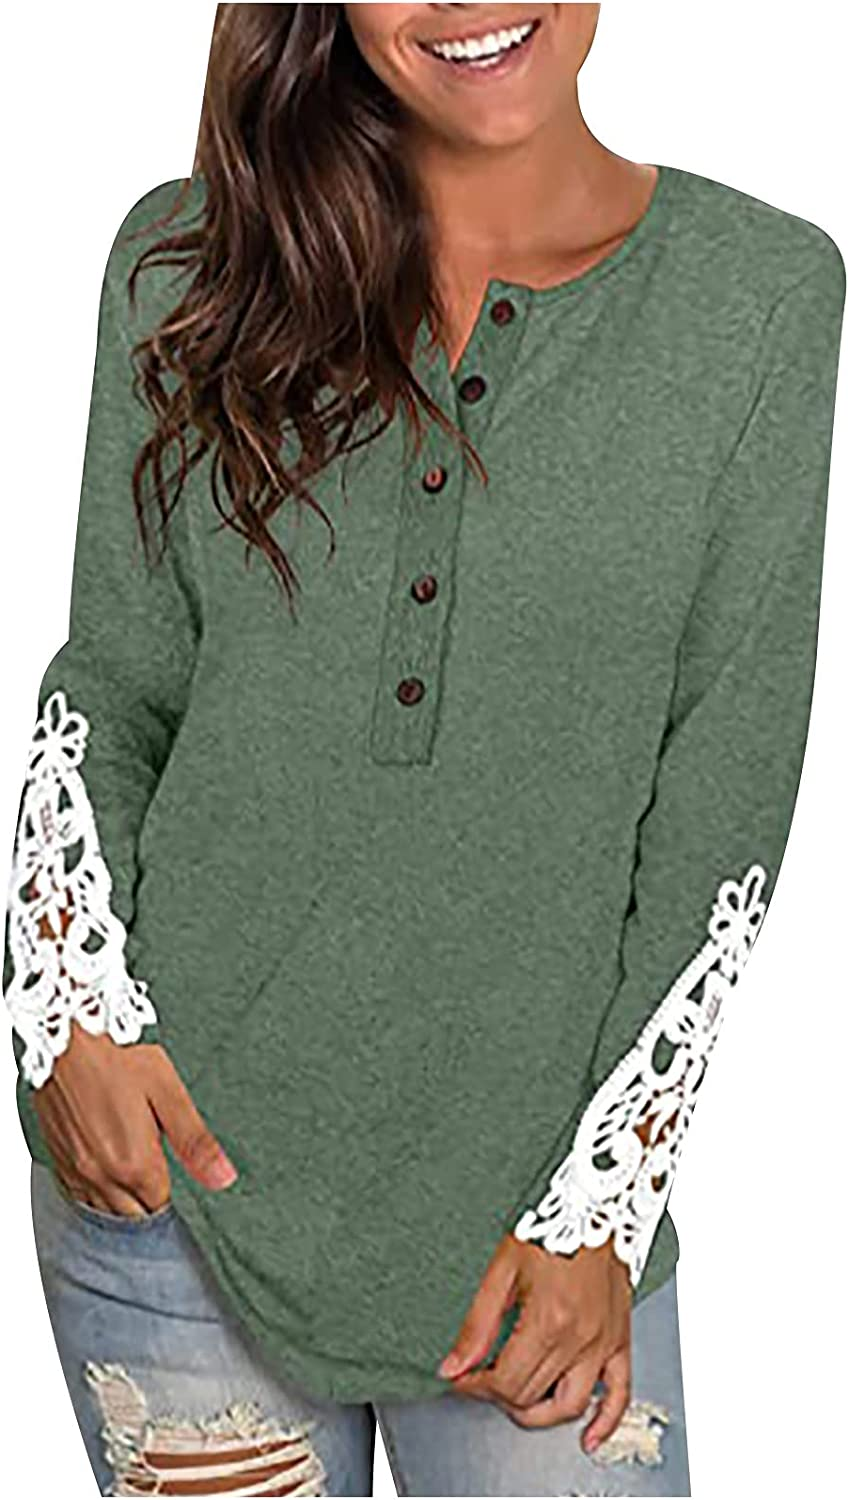 Stitching Lace Long-Sleeve Shirt for Women Solid Color Button O-Neck Blouse Tops Casual Loose Tunic Tee Tops